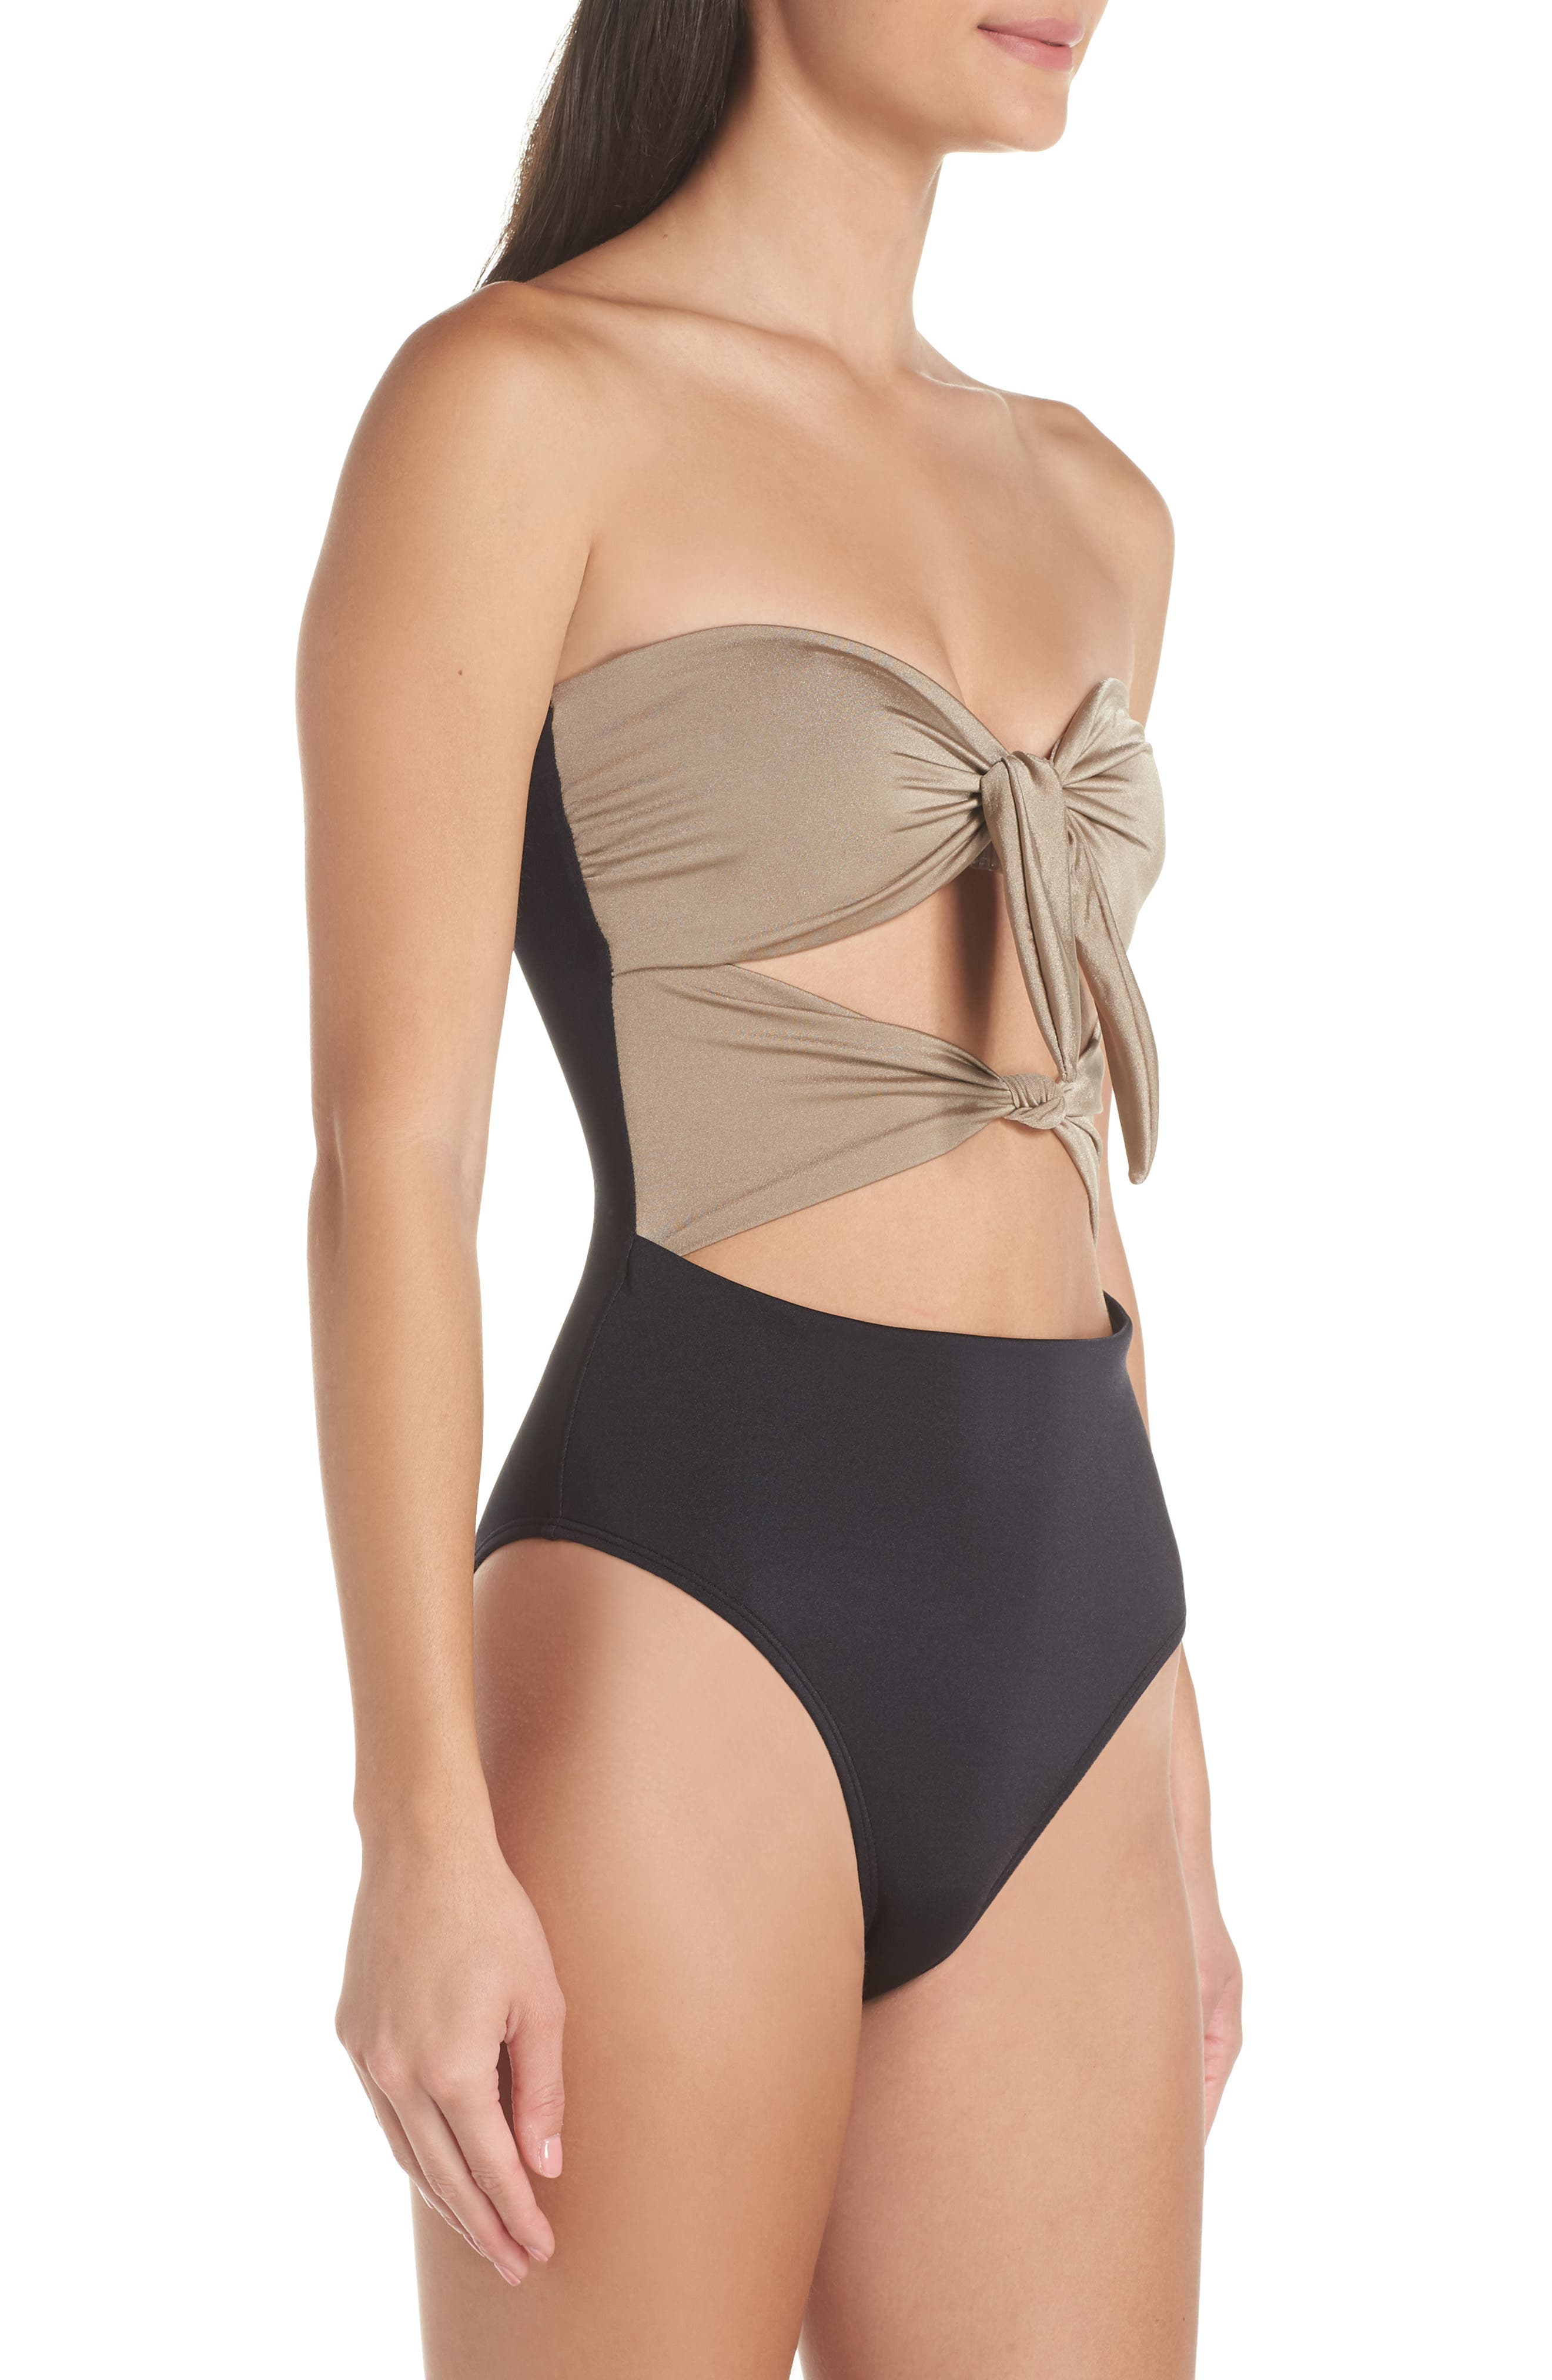 Glam Nights One-Piece Swimsuit,                             Alternate thumbnail 4, color,                             TAN MINK/ BLACK